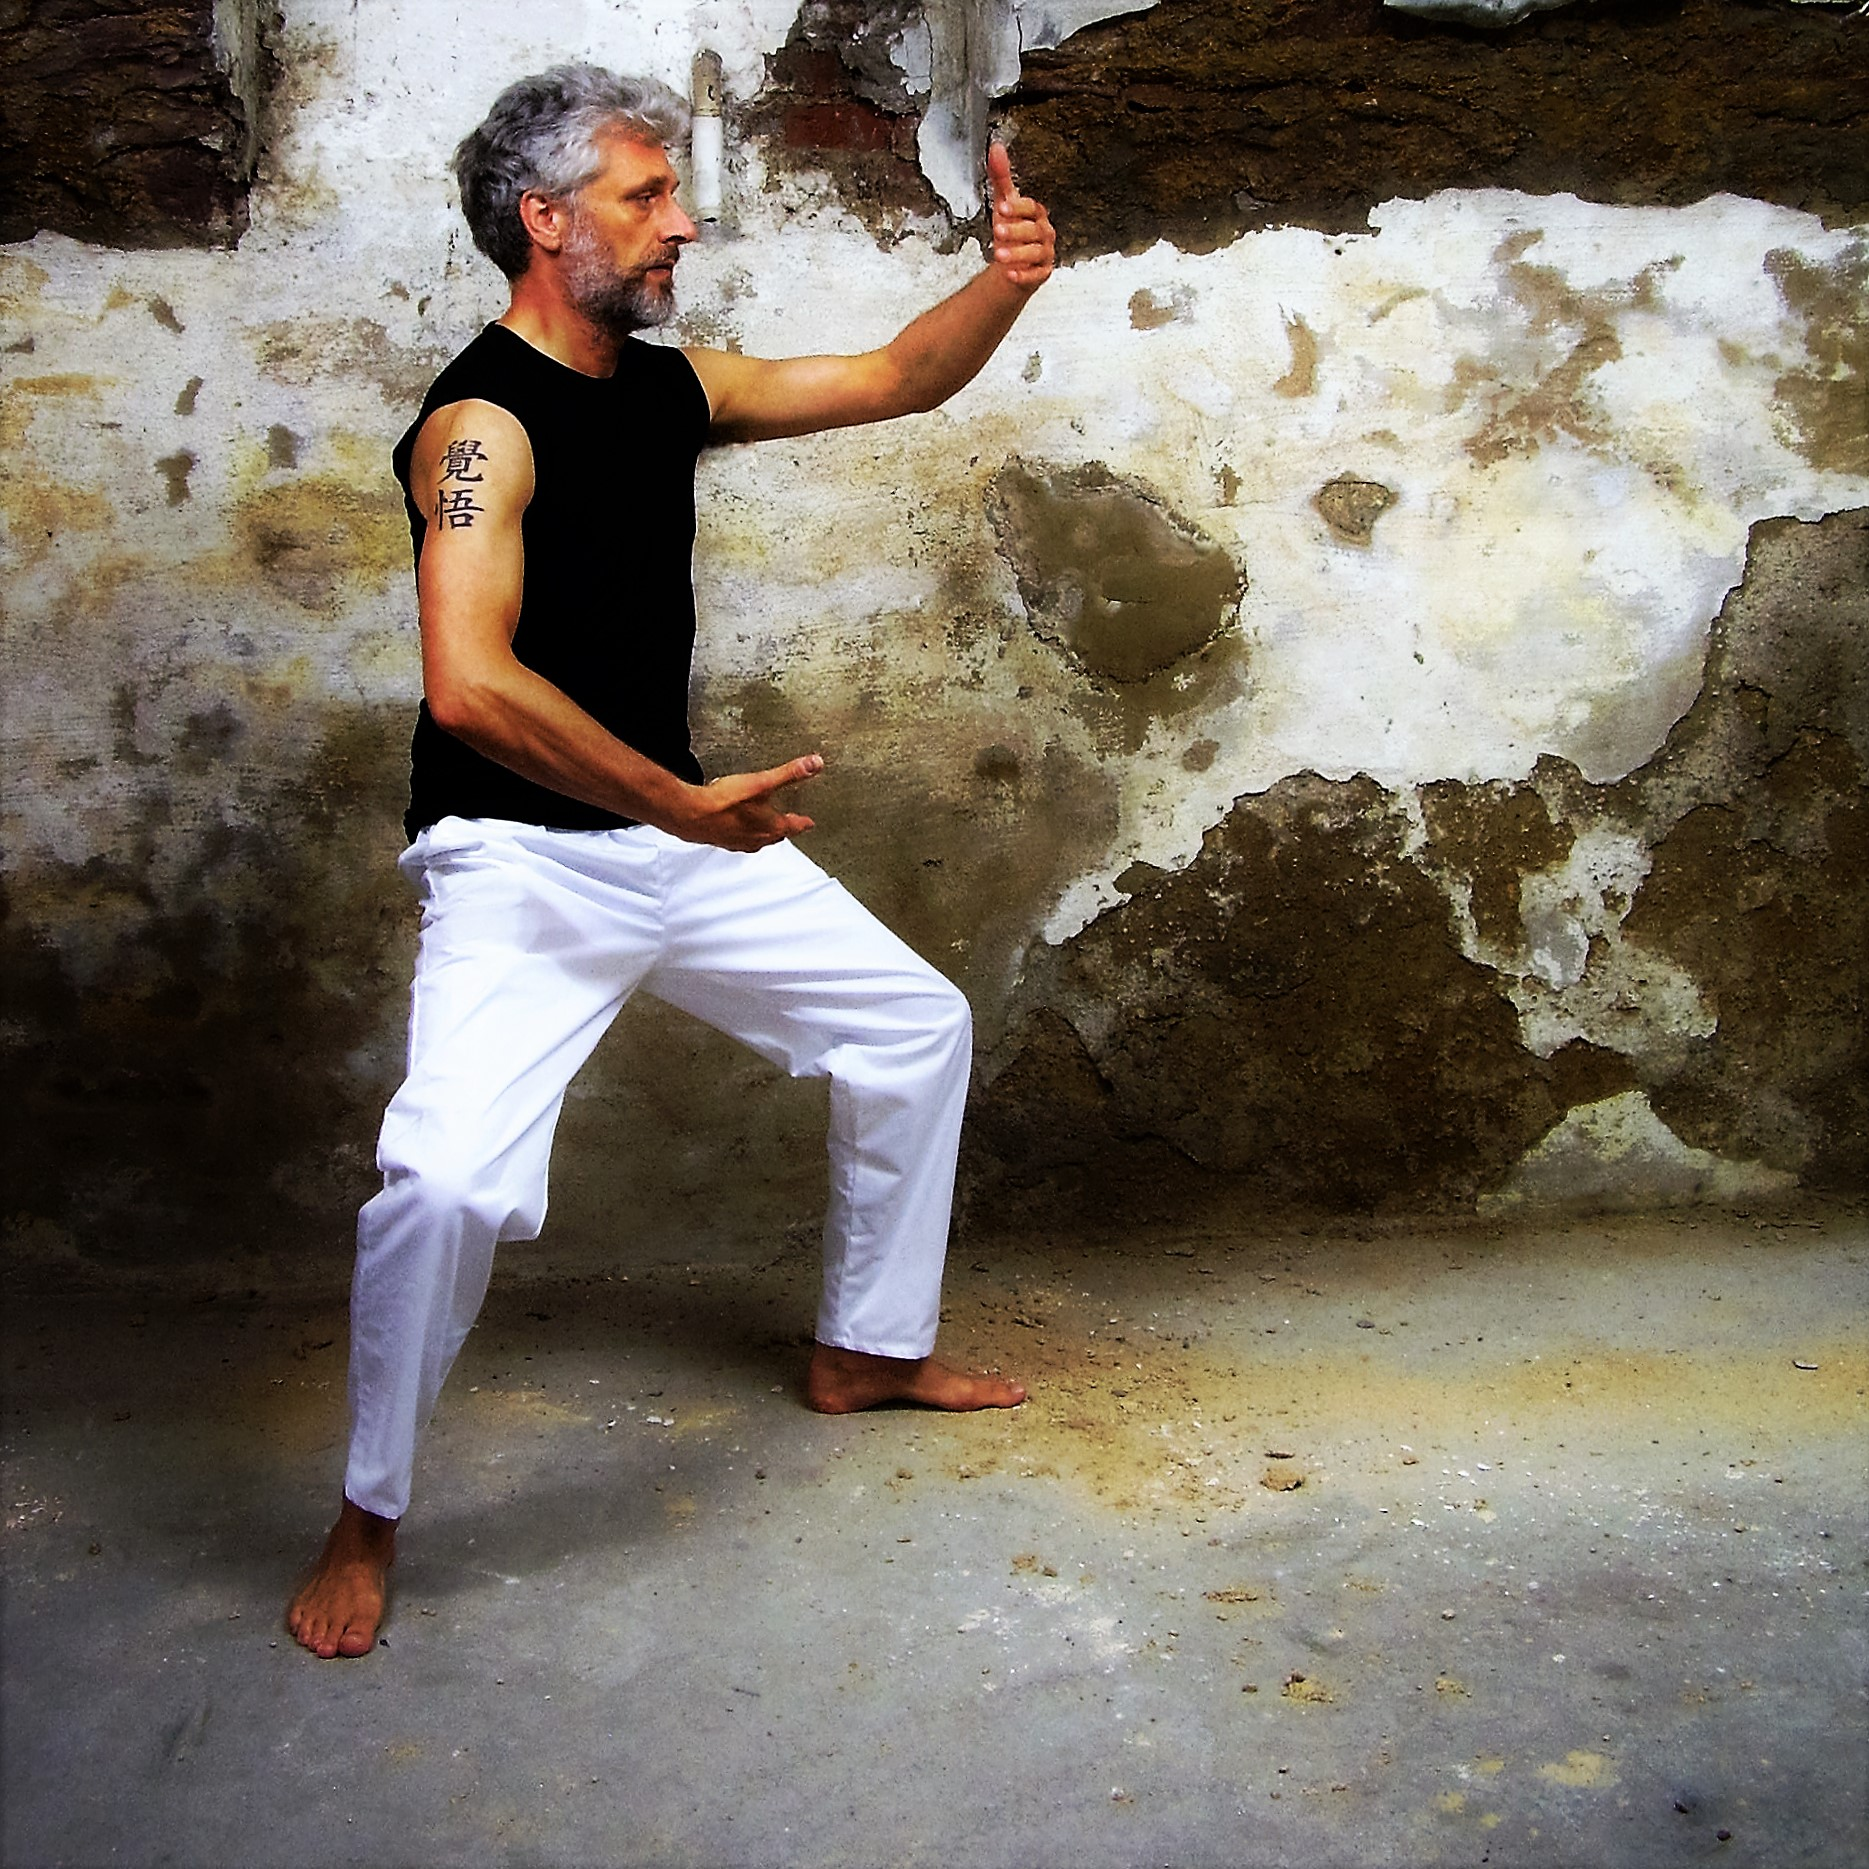 A man perfoming tai chi exercise